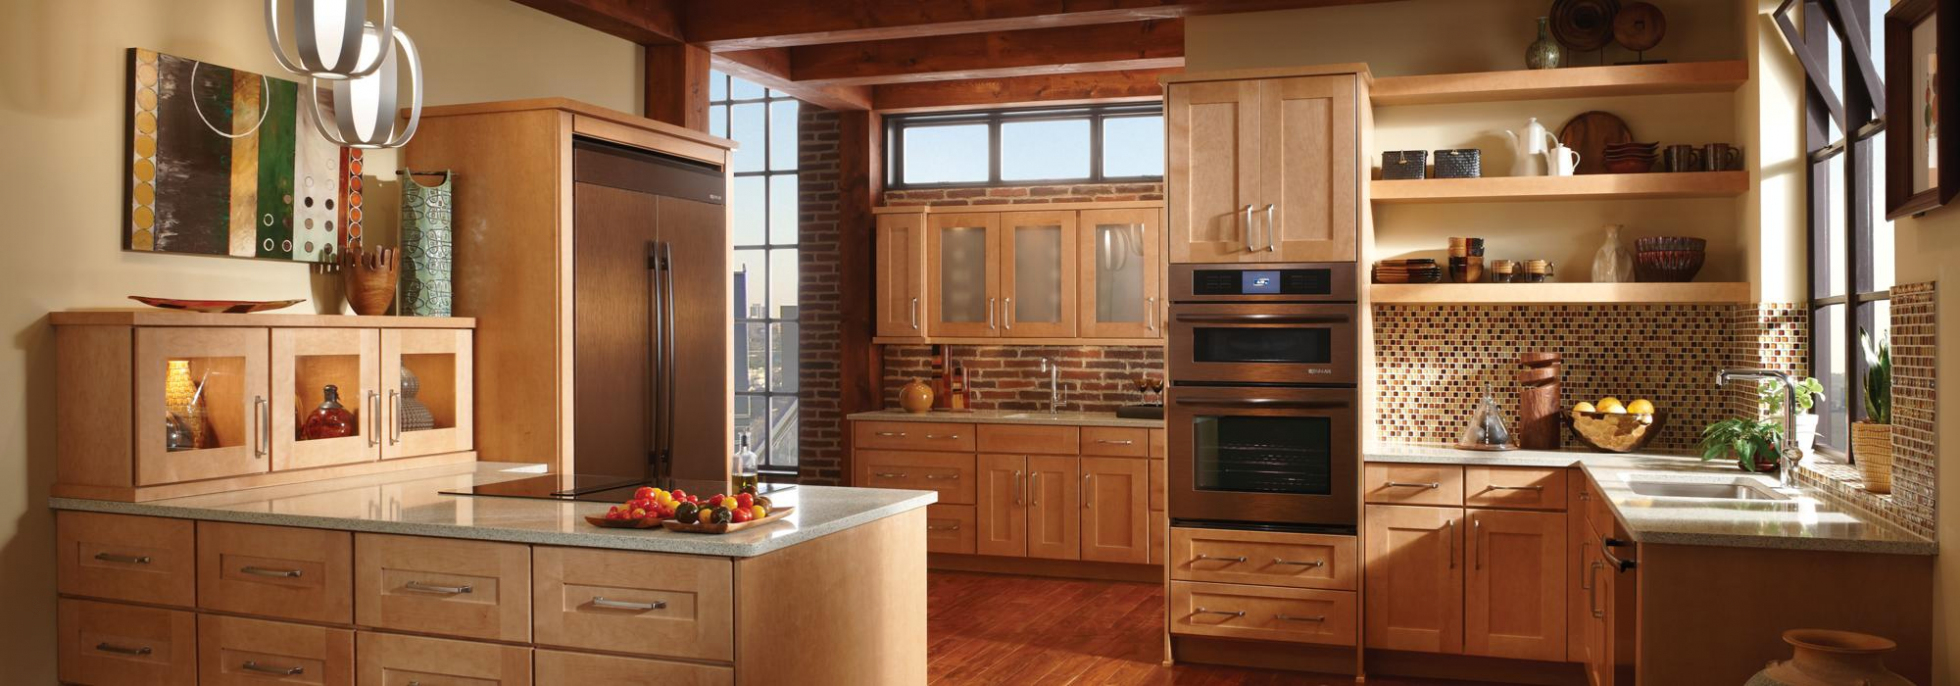 kitchen-cabinets-com-impressive-design-22-yorktowne-cabinetry-intended-for-splendiferous-yorktowne-cabinets-applied-to-your-house-idea.jpg